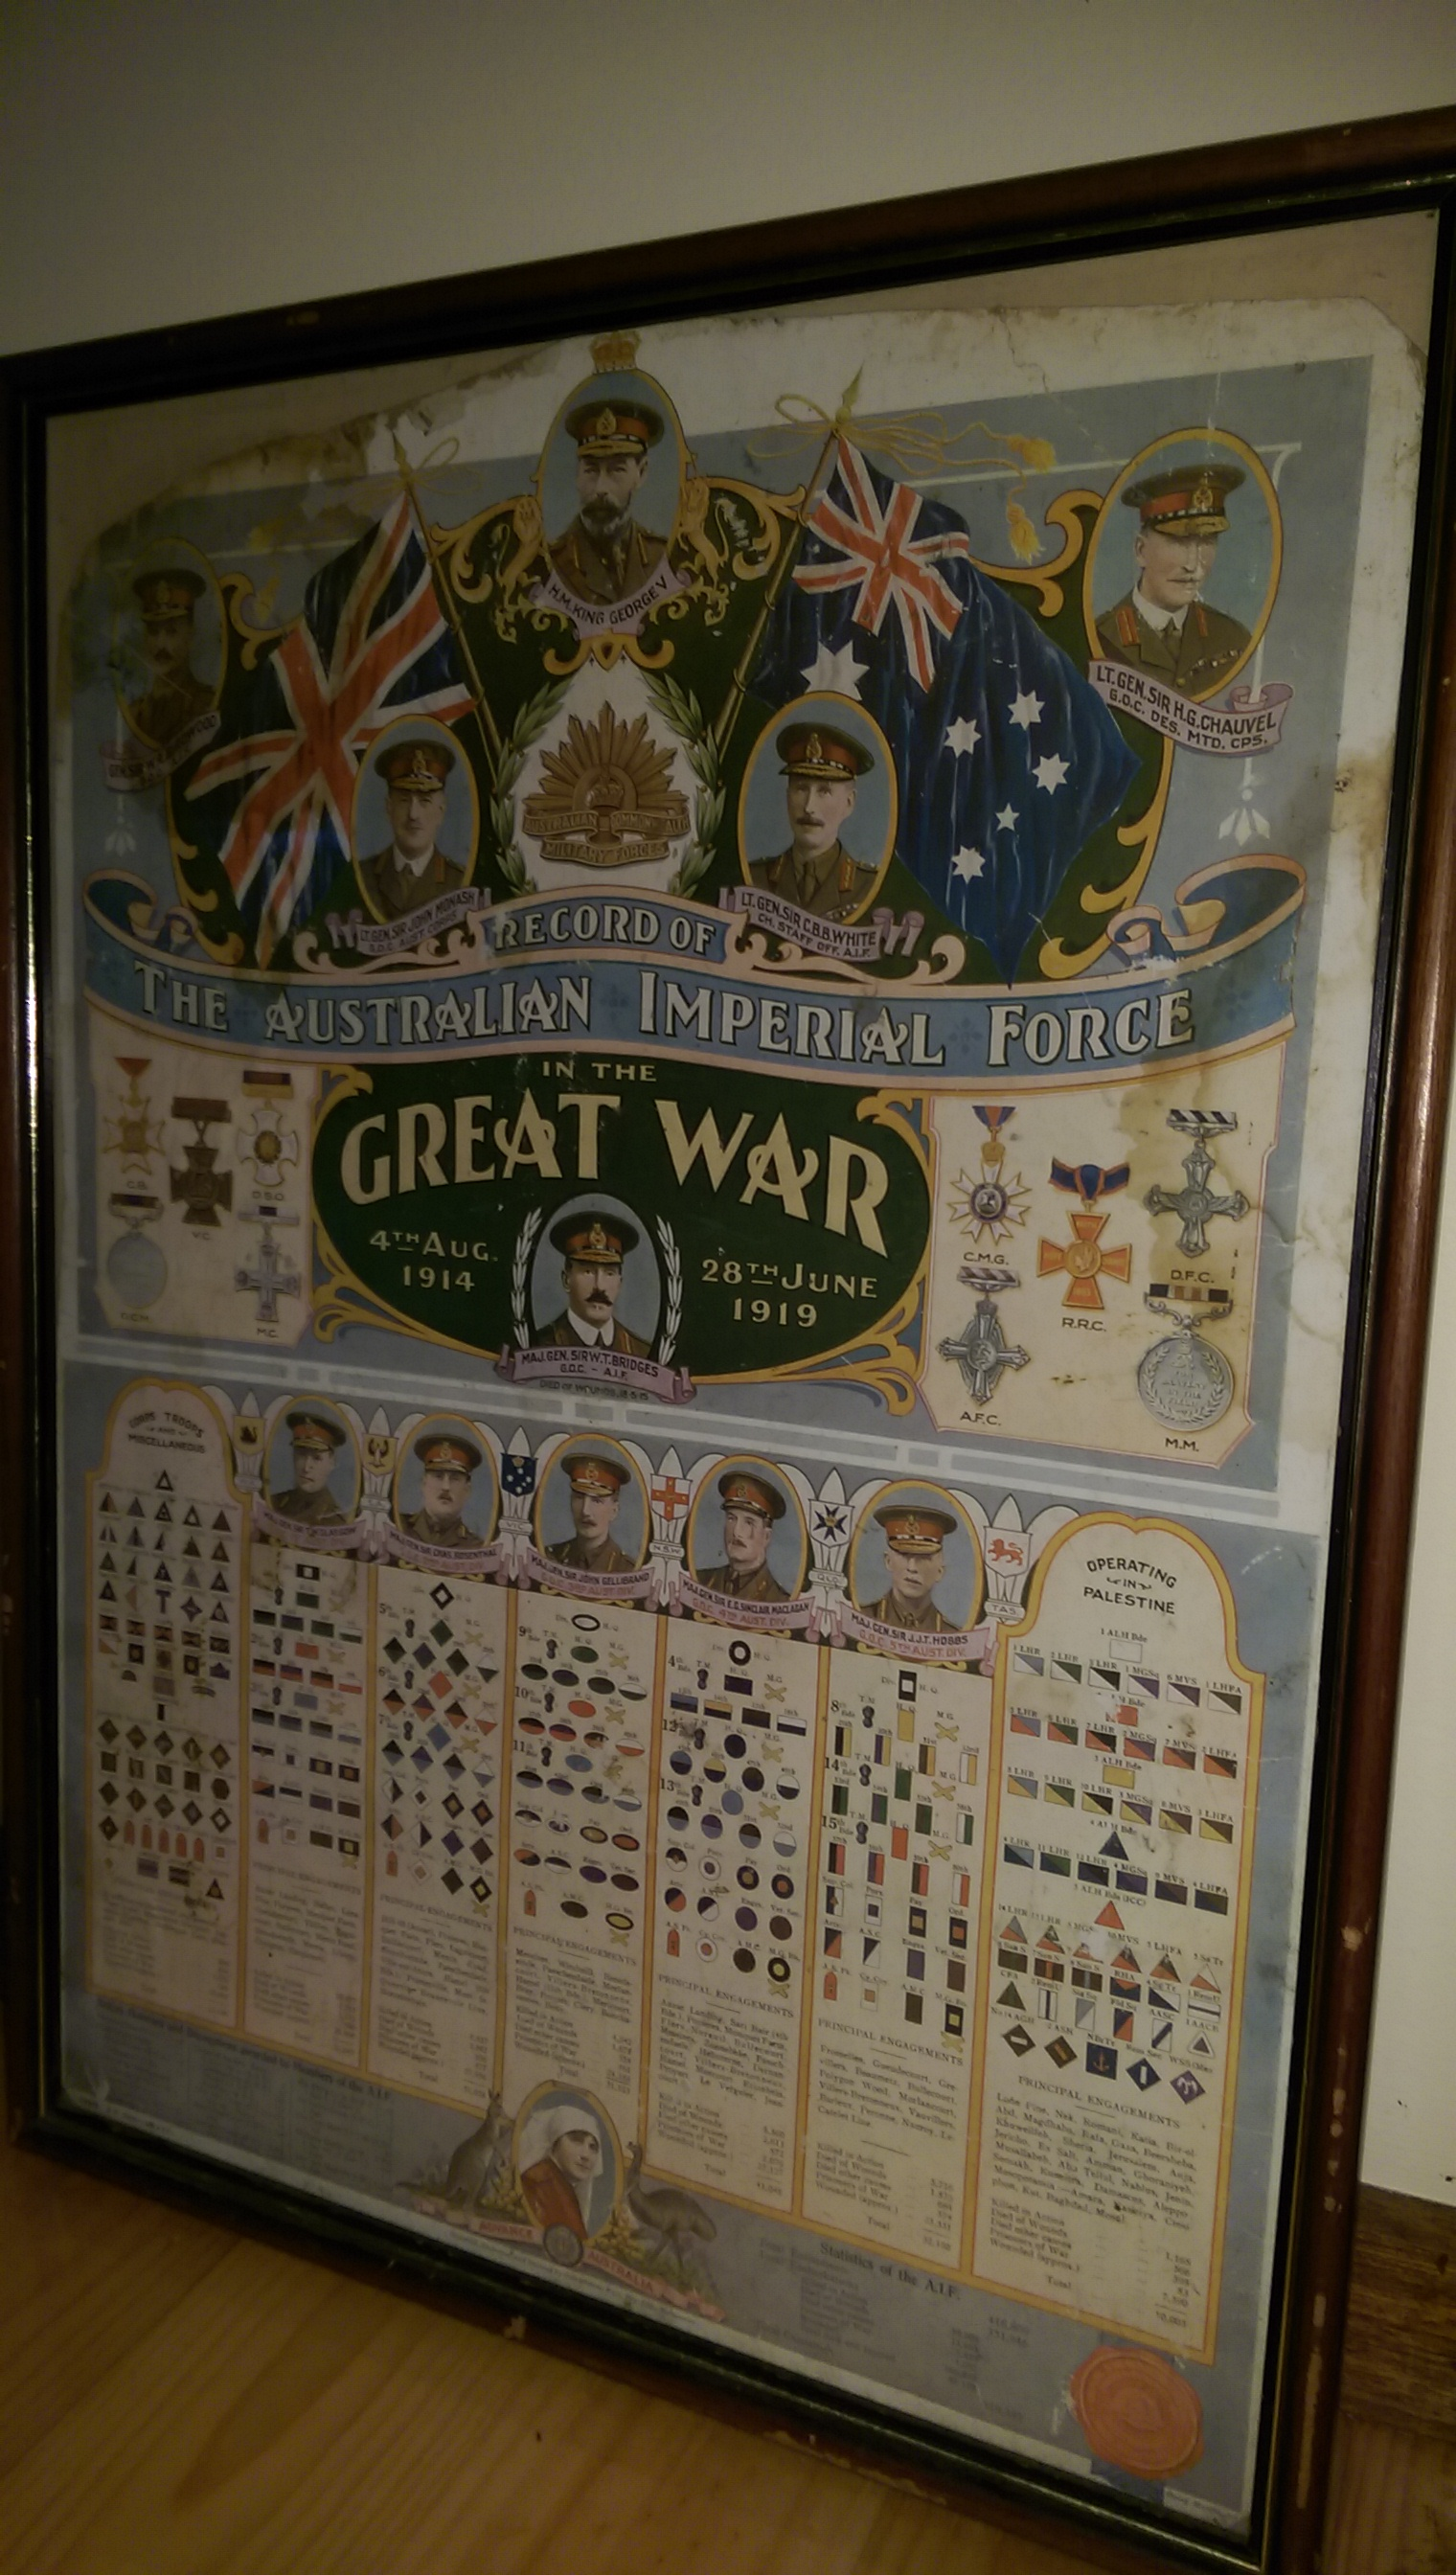 RSL PRINTED POSTER SHOWING ALL THE MAJOR PEOPLE THAT CLEMENTINA WORKED WITH DURING WW1, PRINTED IN 1